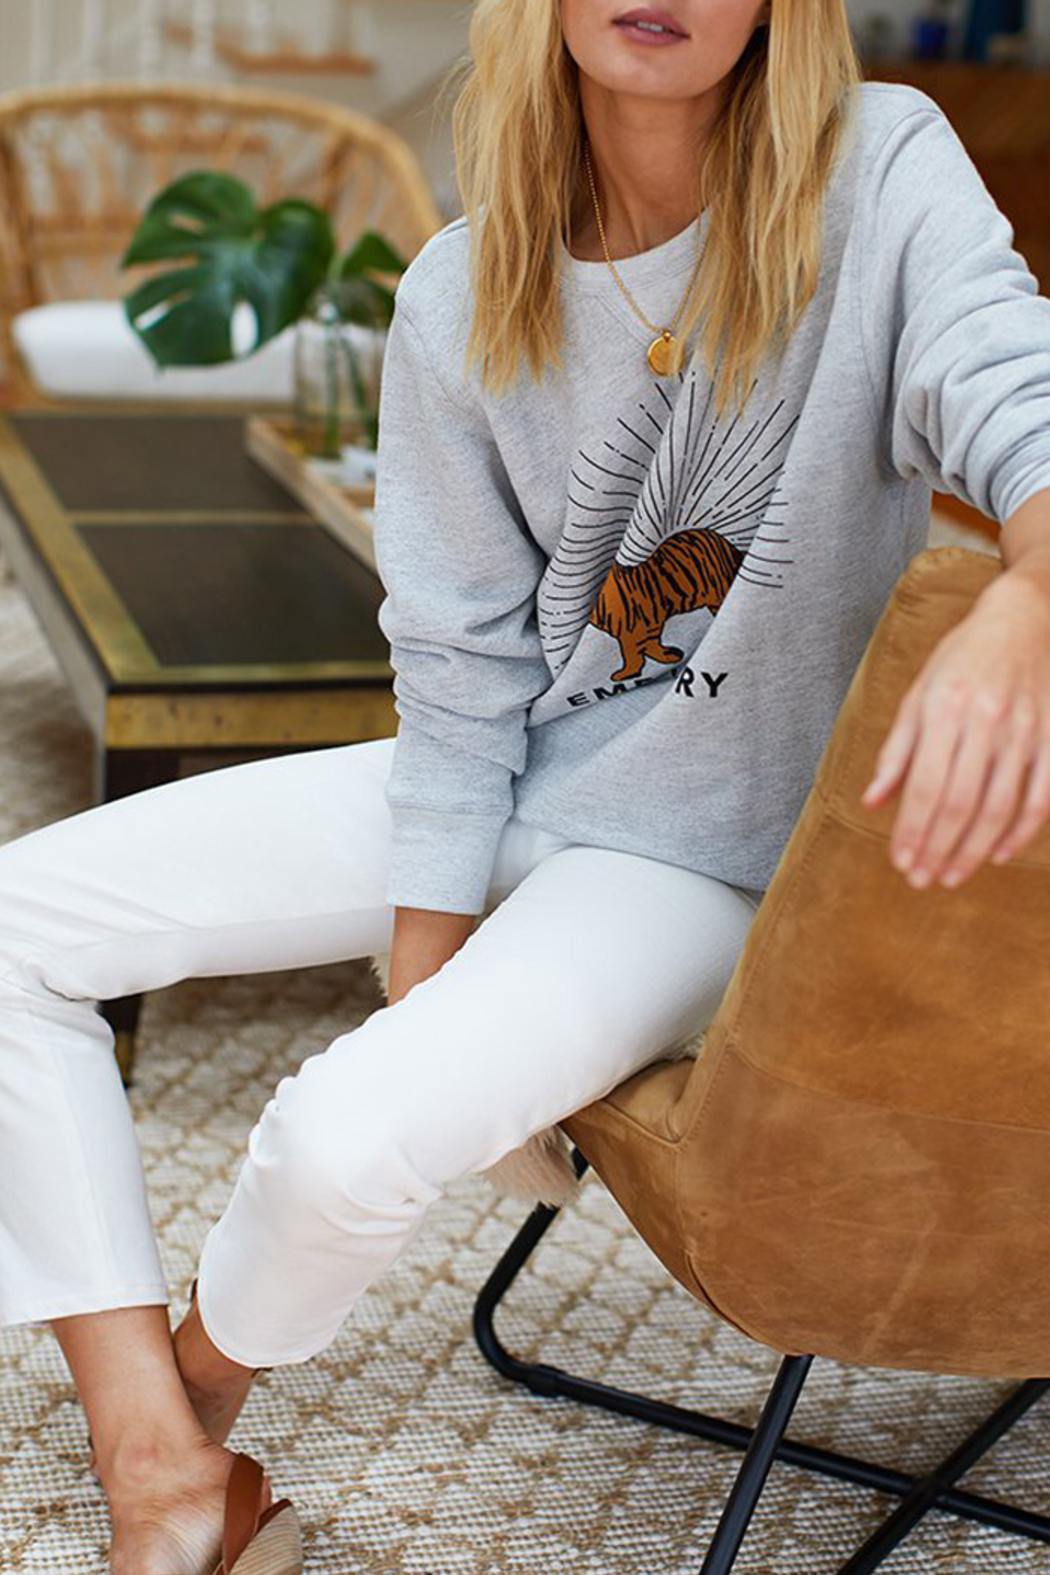 Emerson Fry TIGER SWEATSHIRT - Side Cropped Image